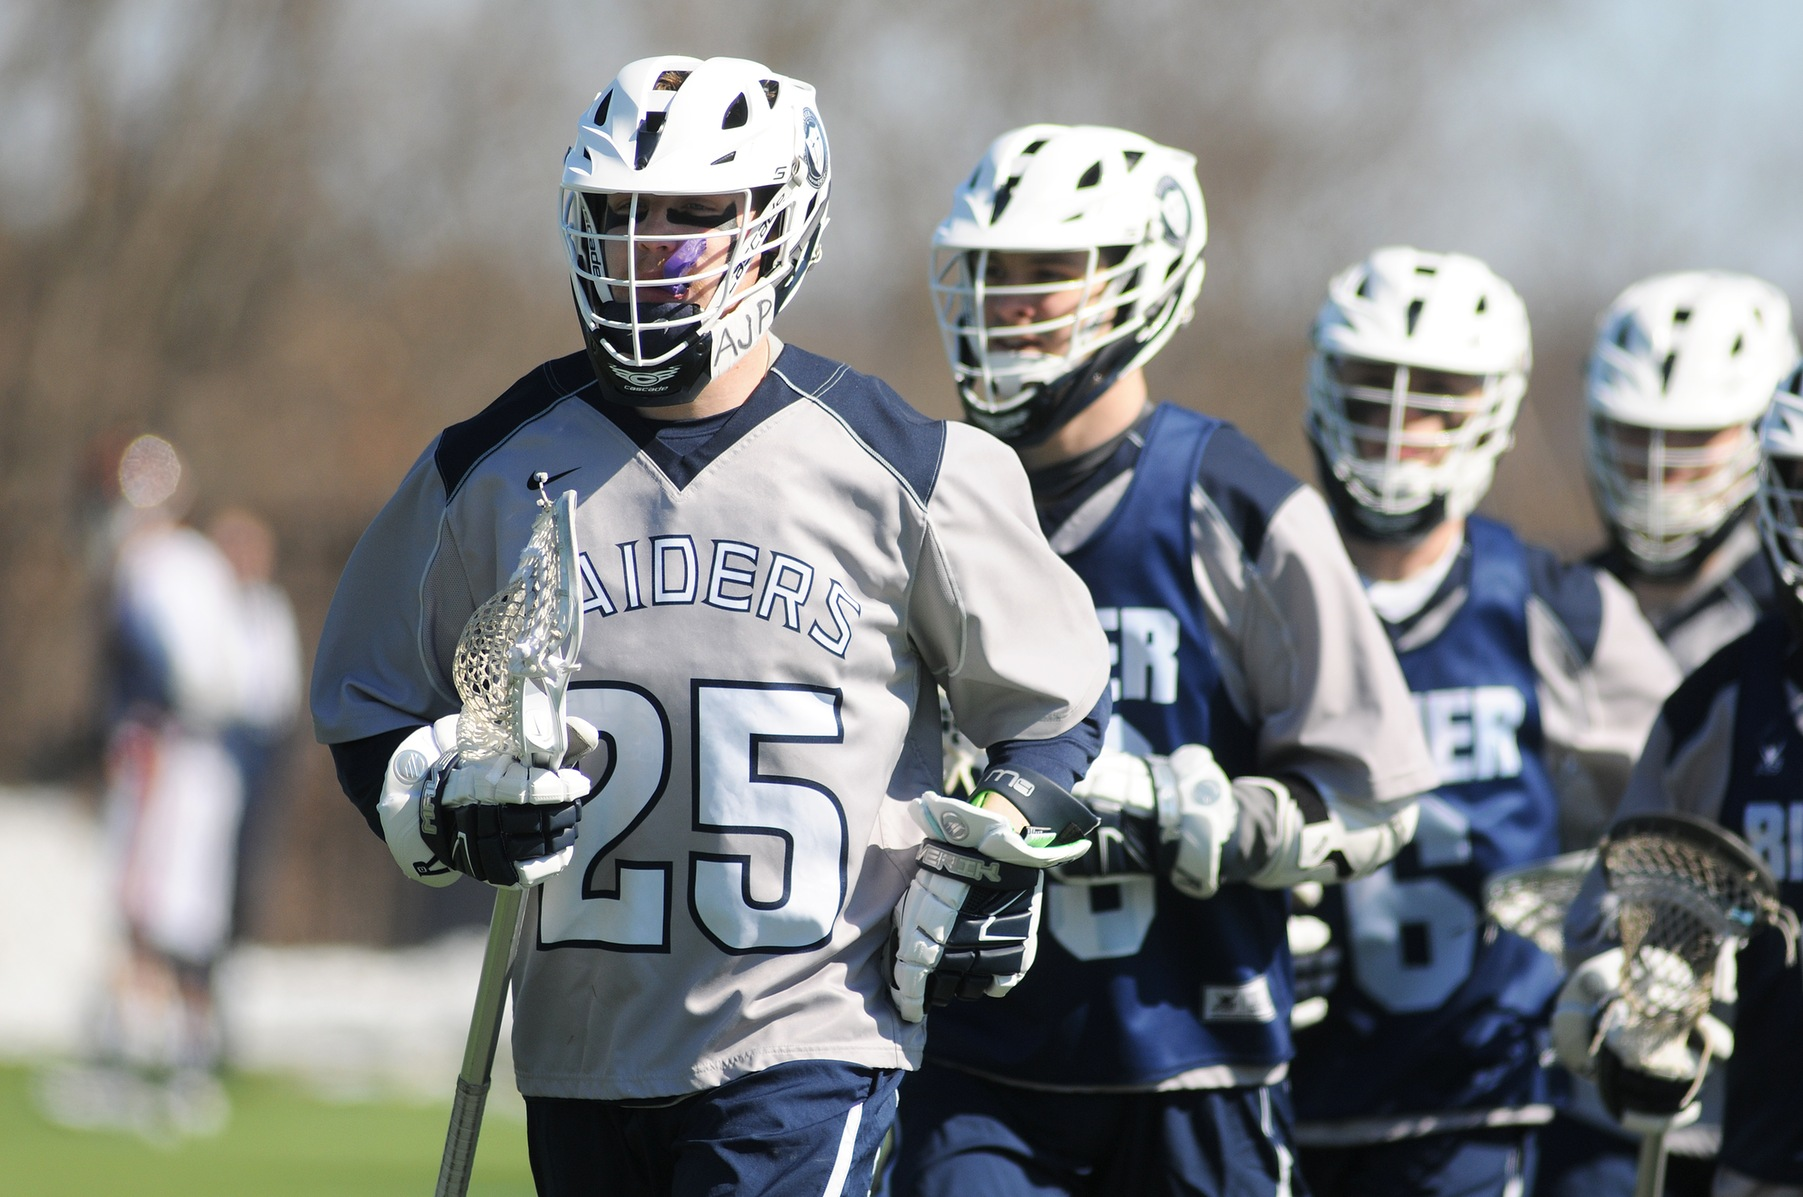 Men's Lacrosse: Raiders capture first conference win at home against AMCats, 11-9.